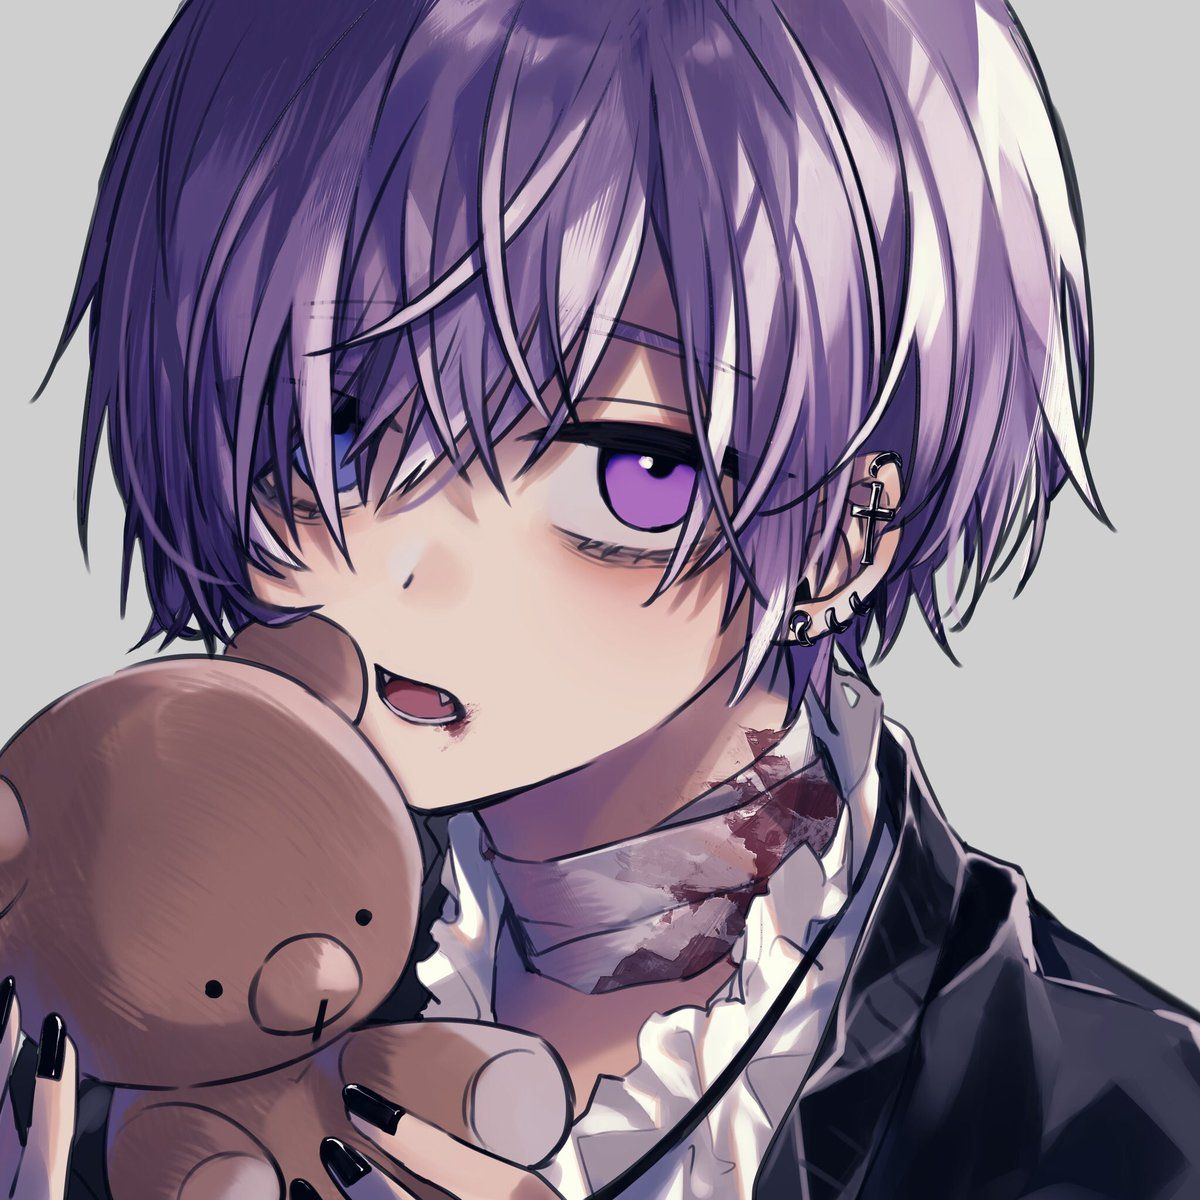 รูปภาพ Yandere anime, Cute anime boy, Anime chibi